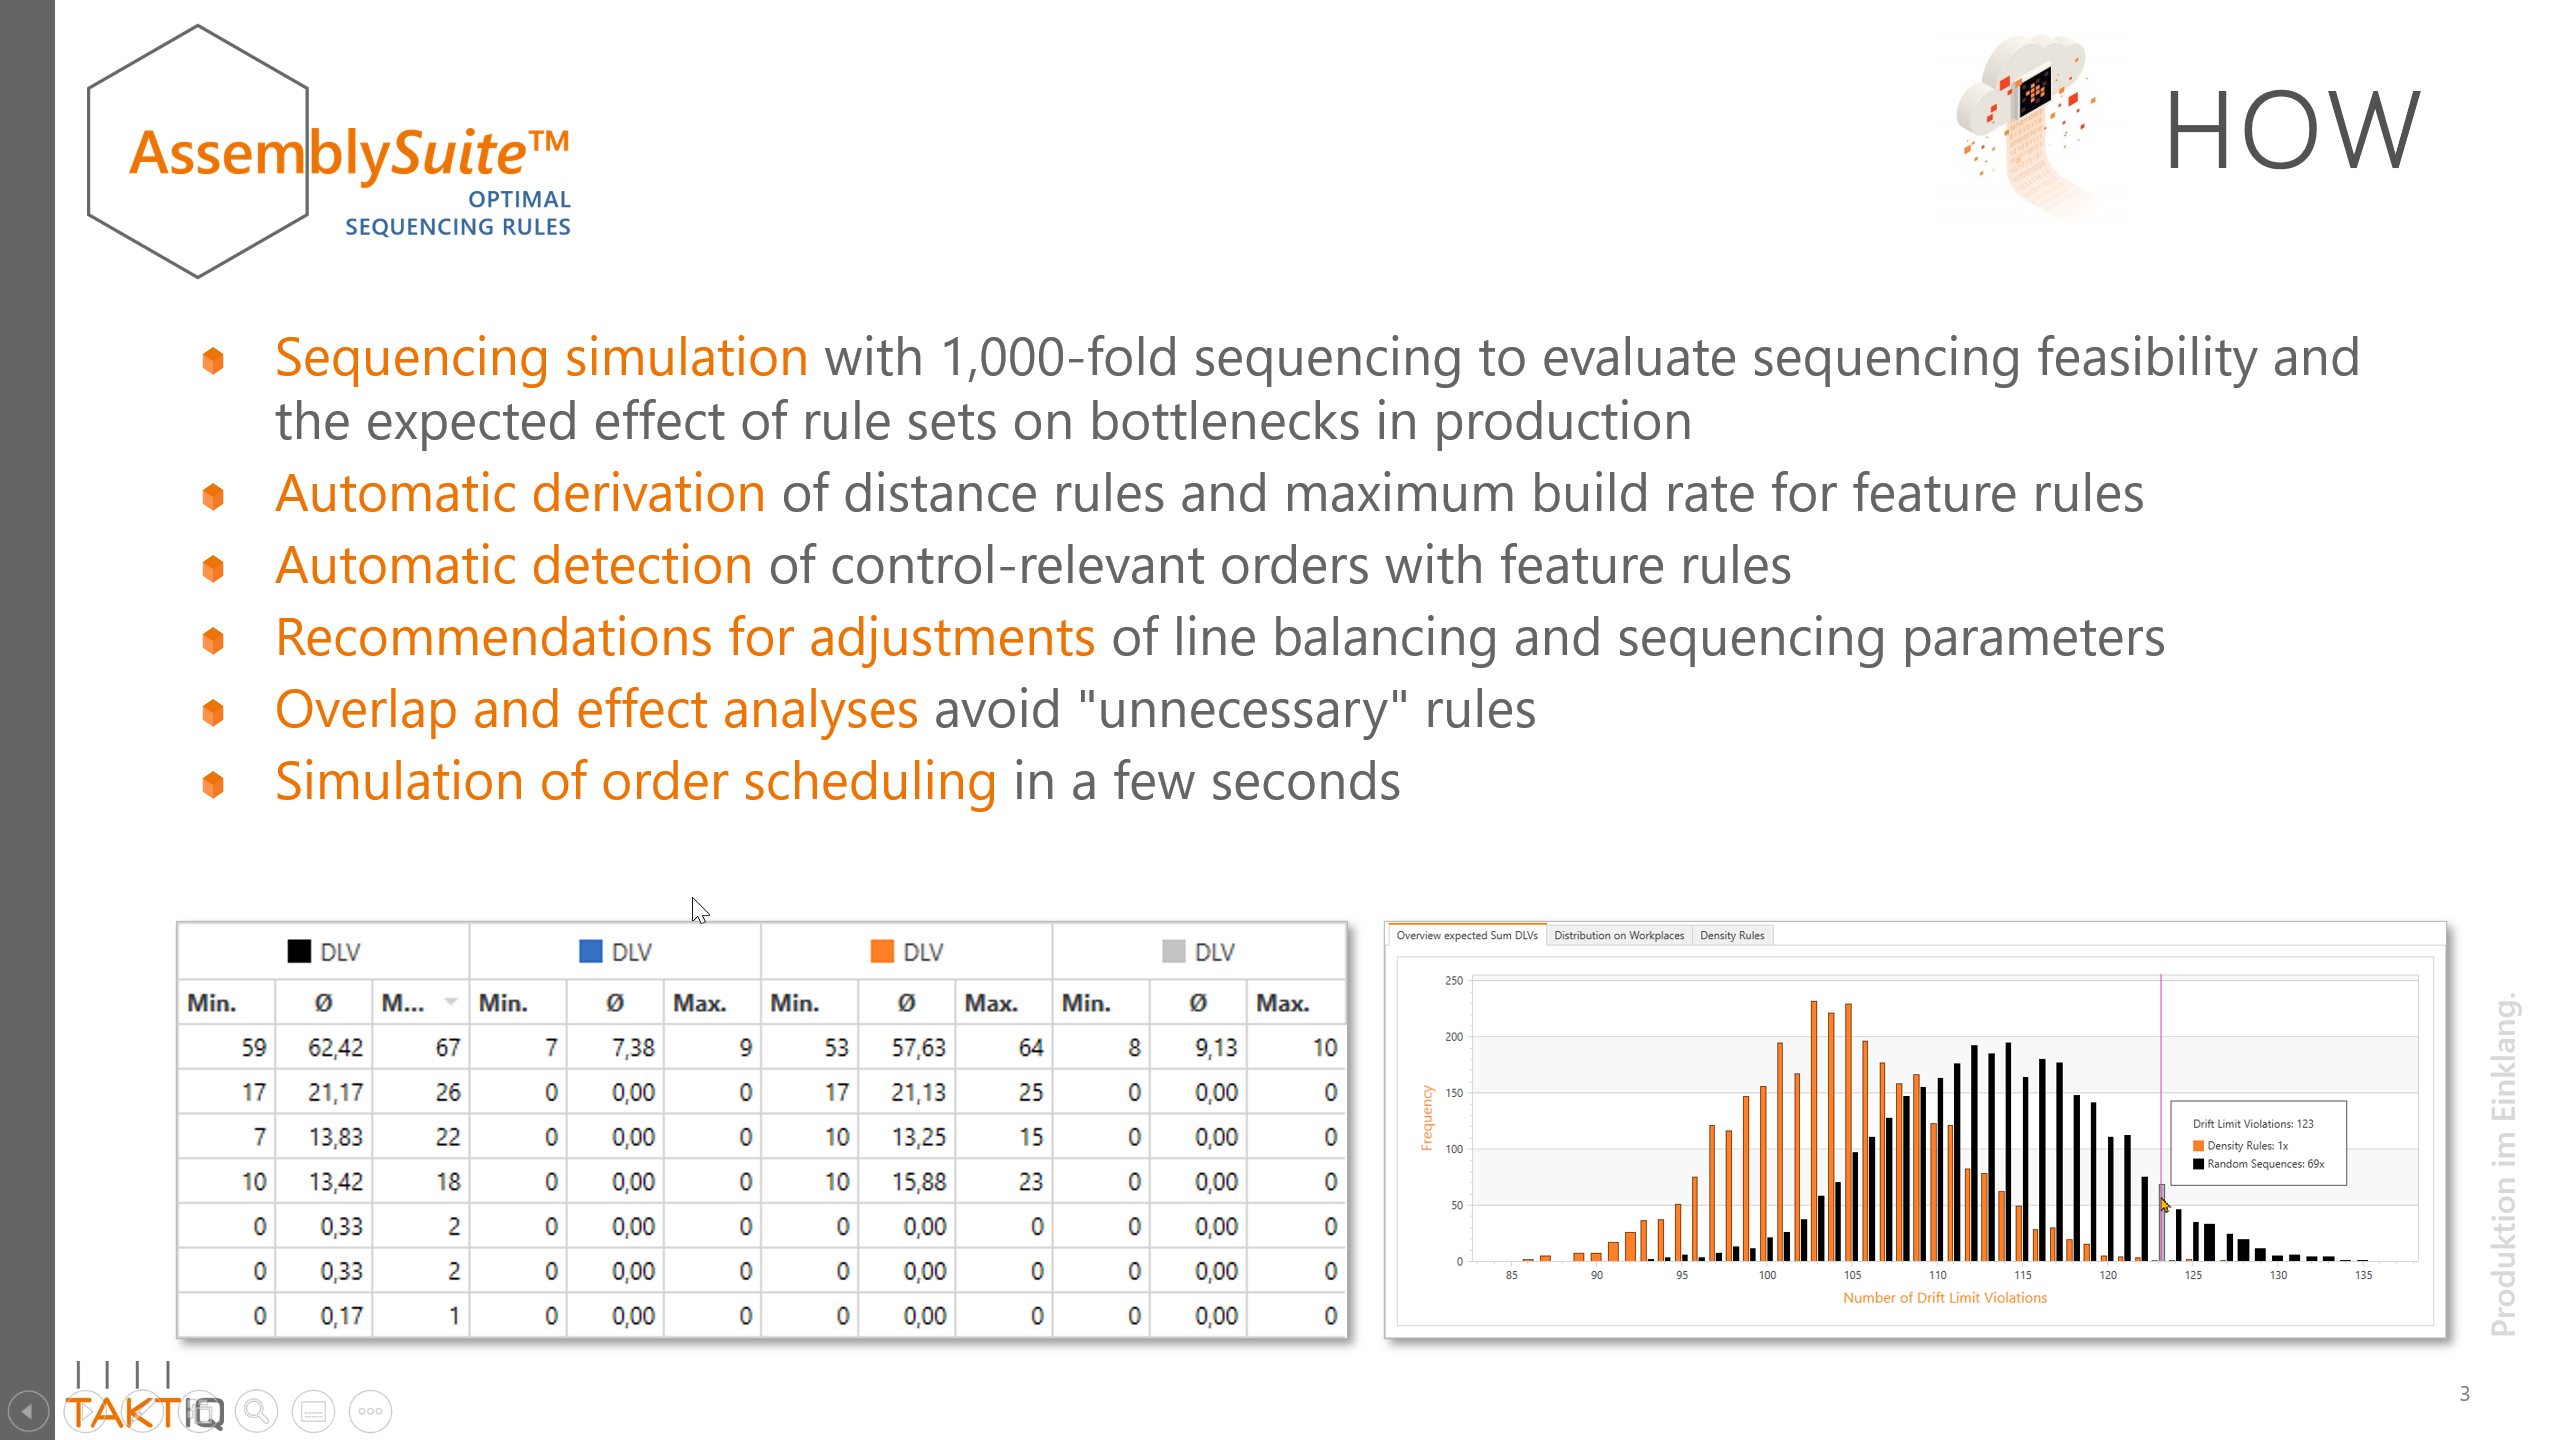 Benefits of analytical sequencing rule derivation